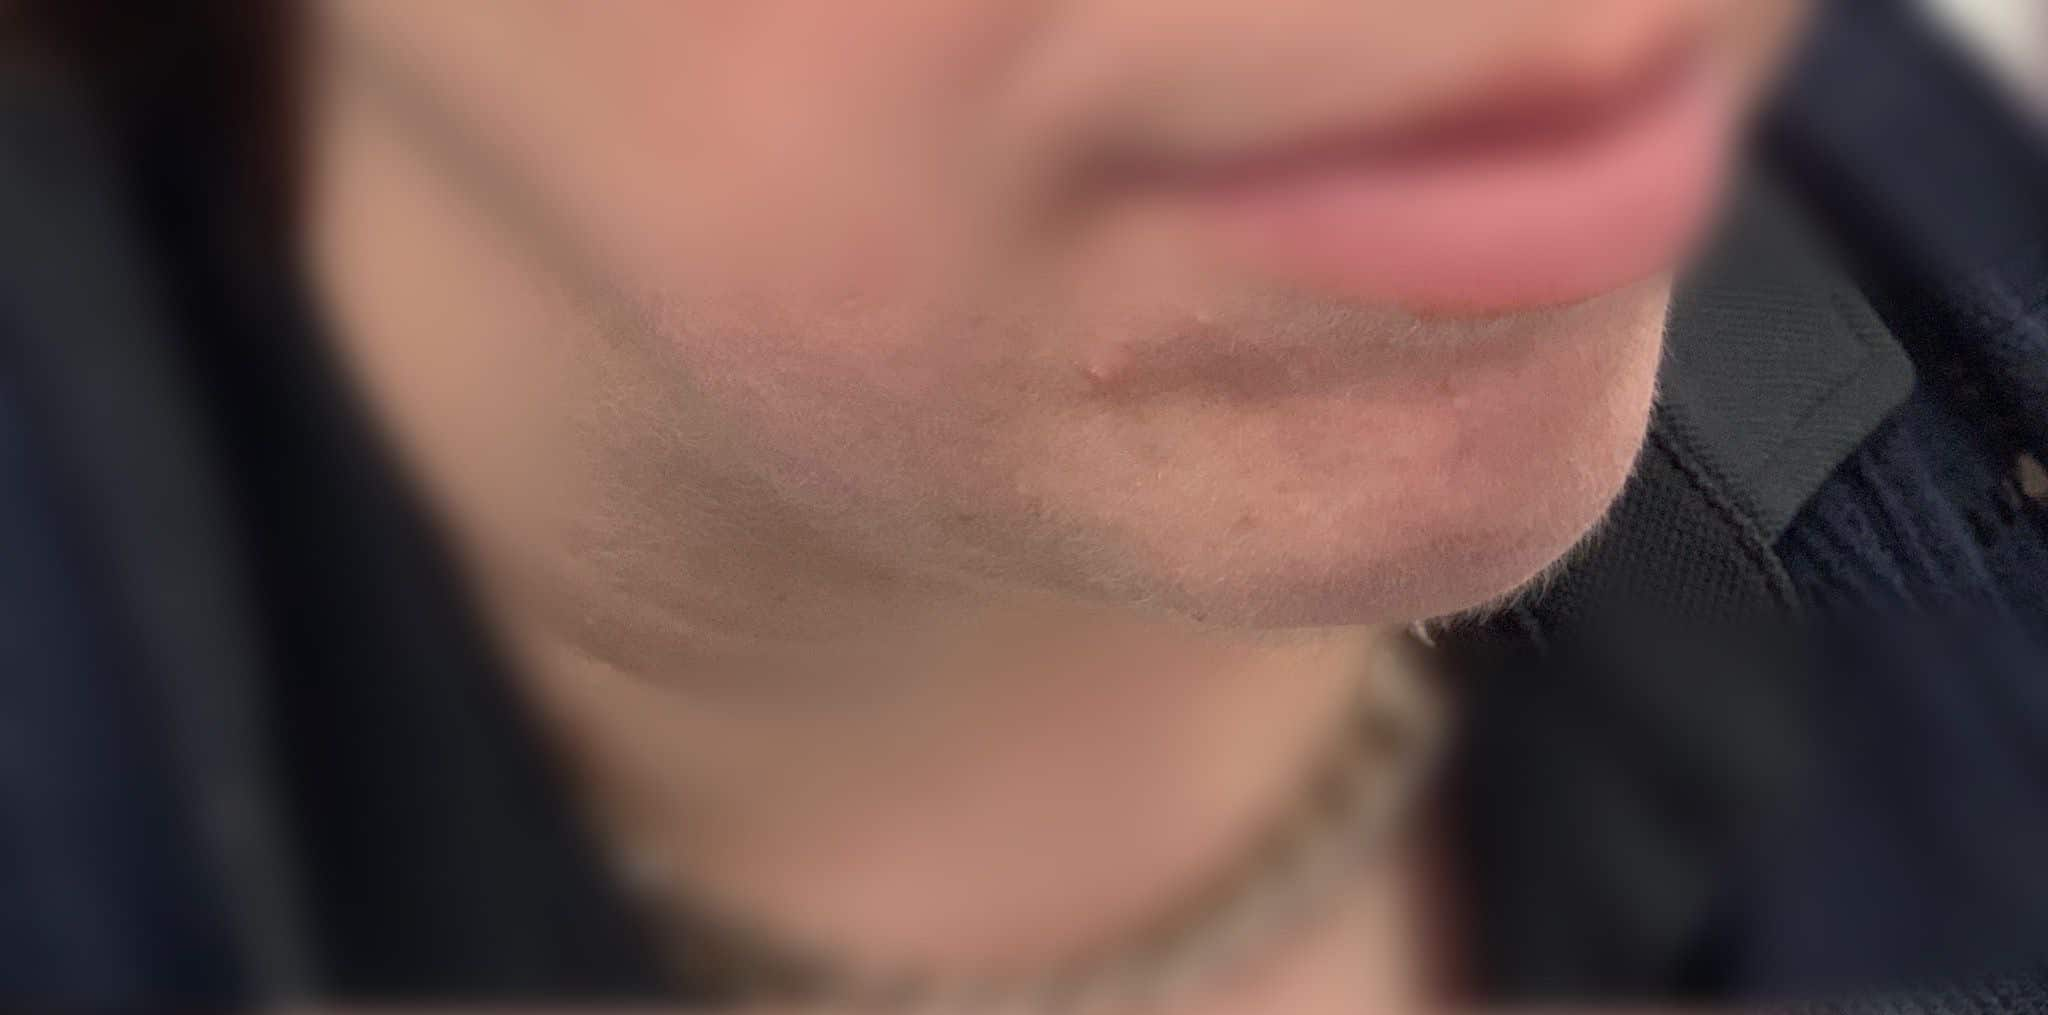 Before Chin fillers injection